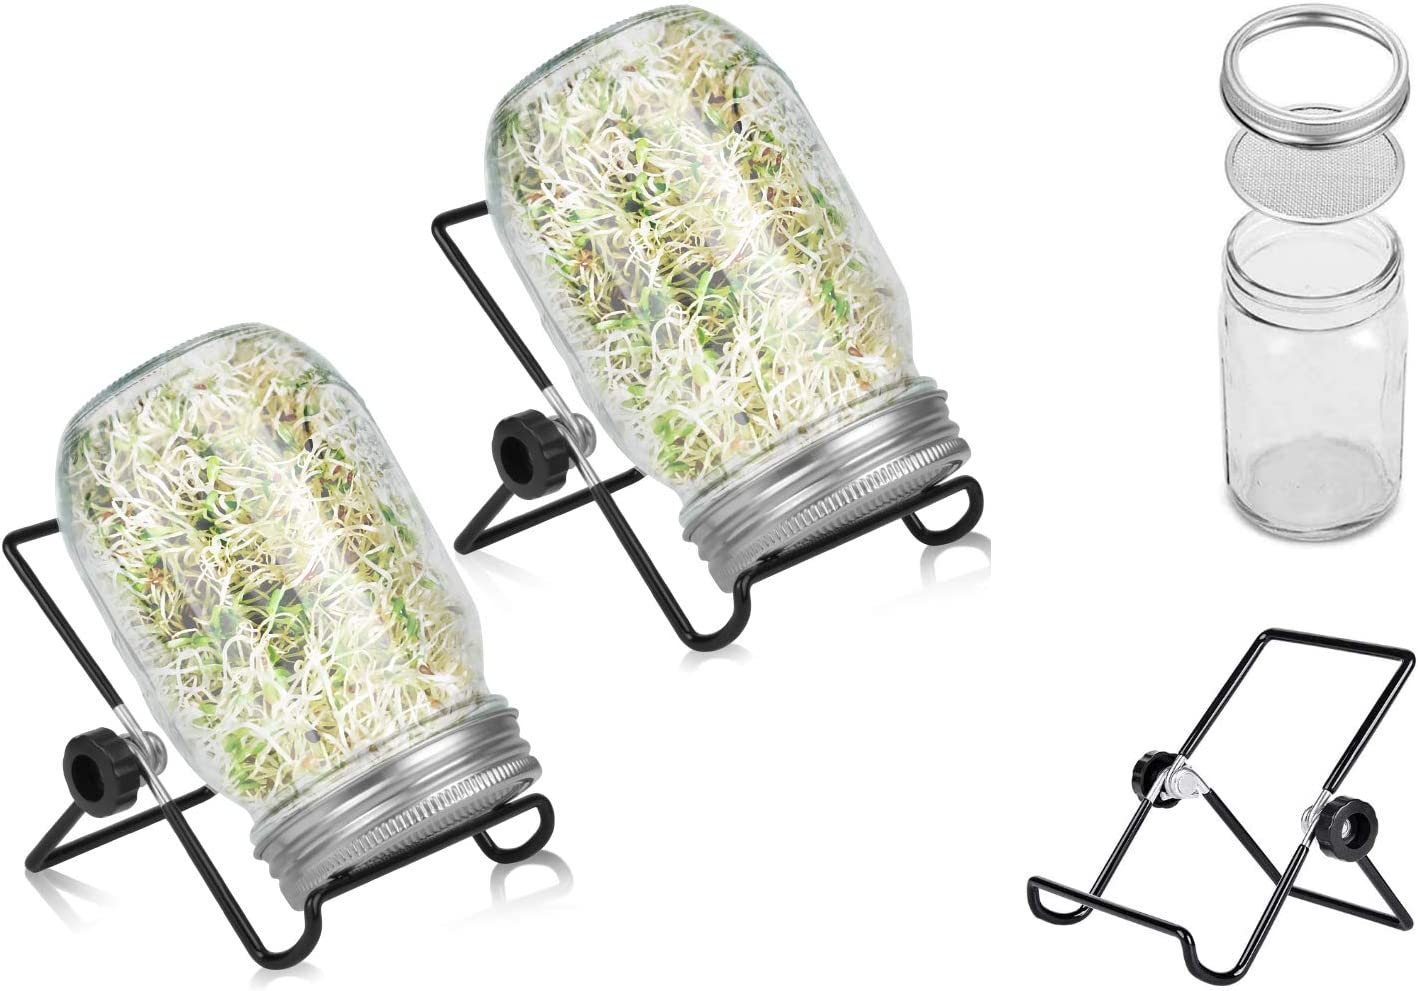 Seed Sprouting Jar Kit by Juzanl